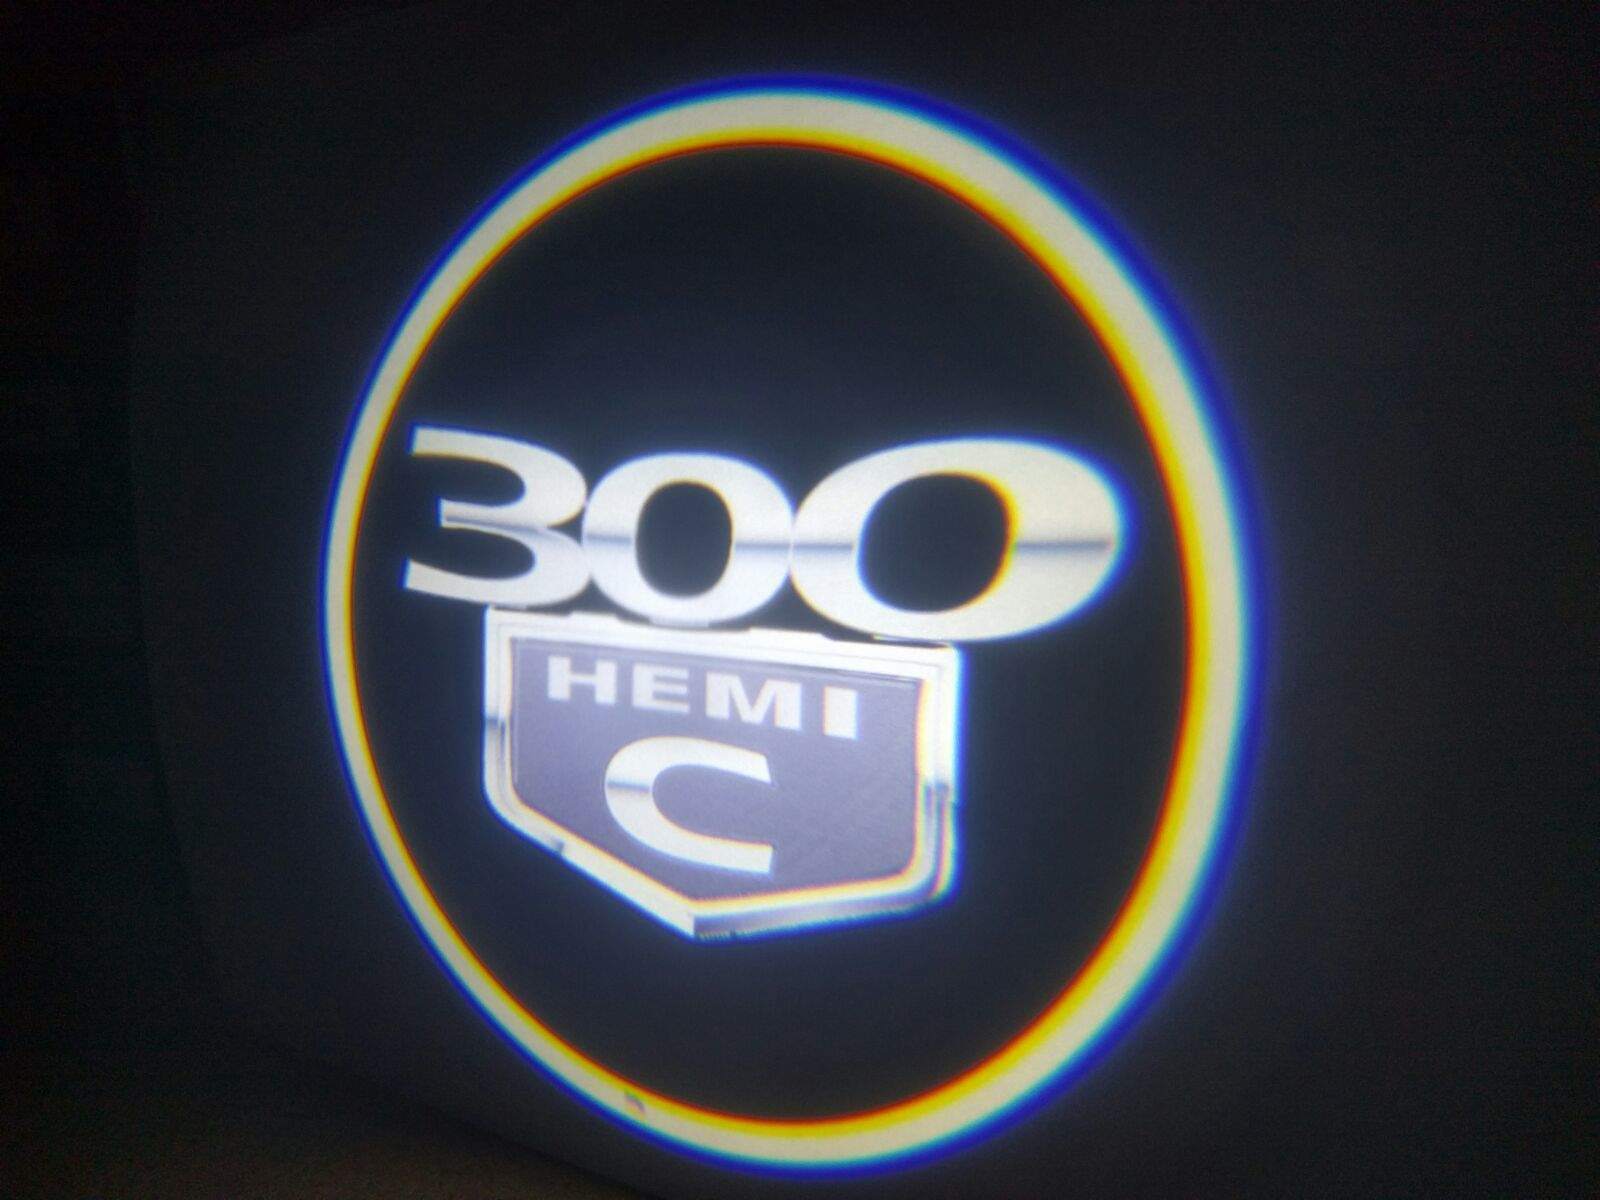 Light Projector 300 Hemi C Led Door Projector Courtesy Puddle Logo Light